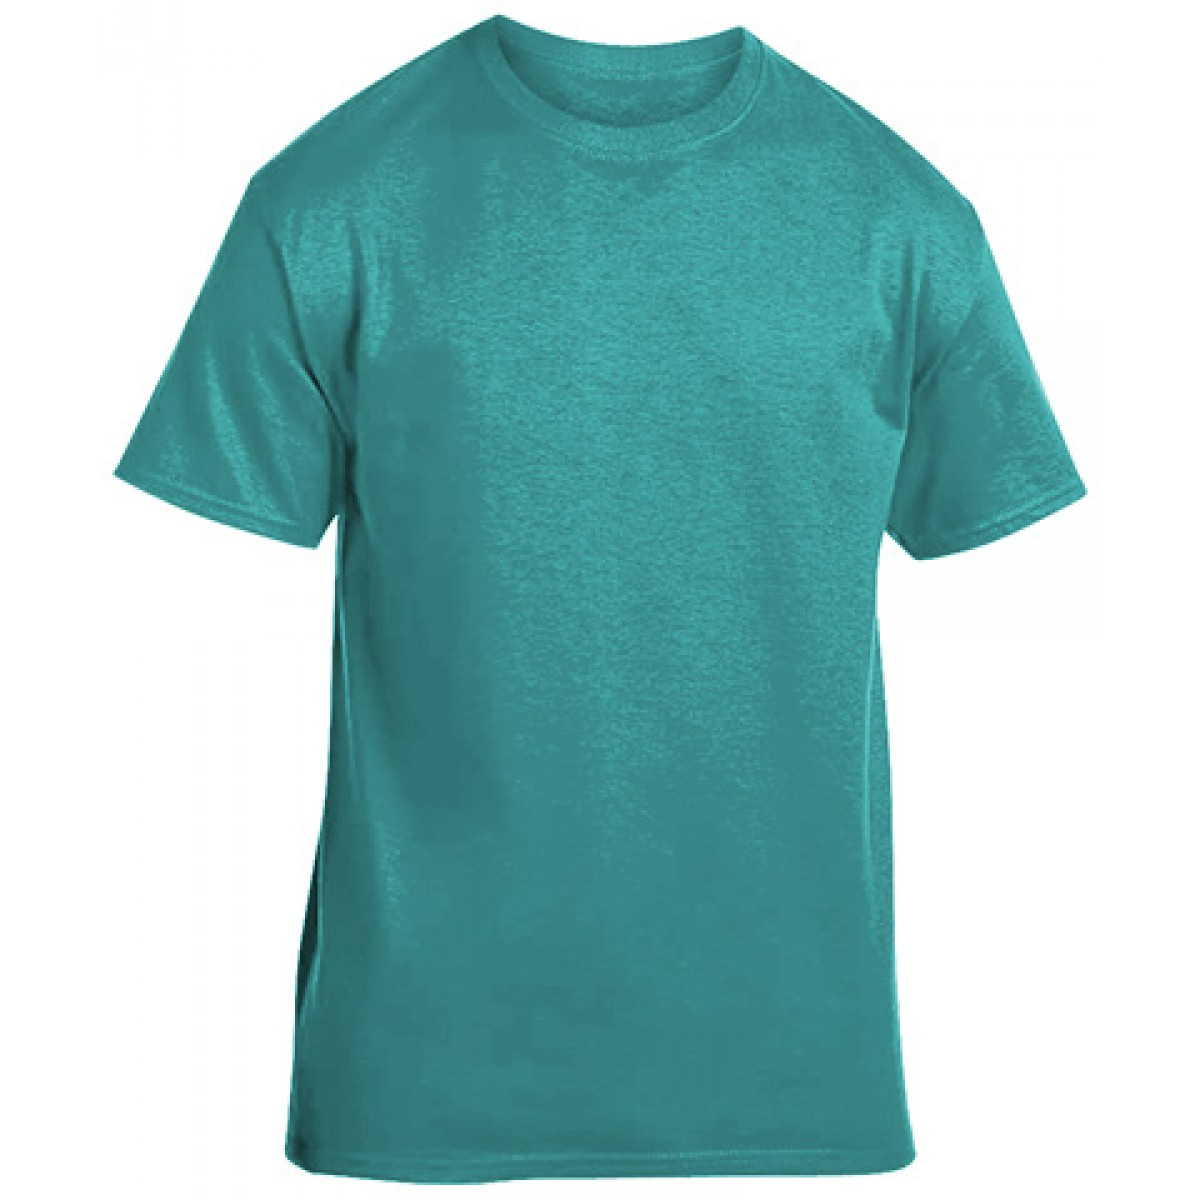 Soft 100% Cotton T-Shirt-Jade-XL